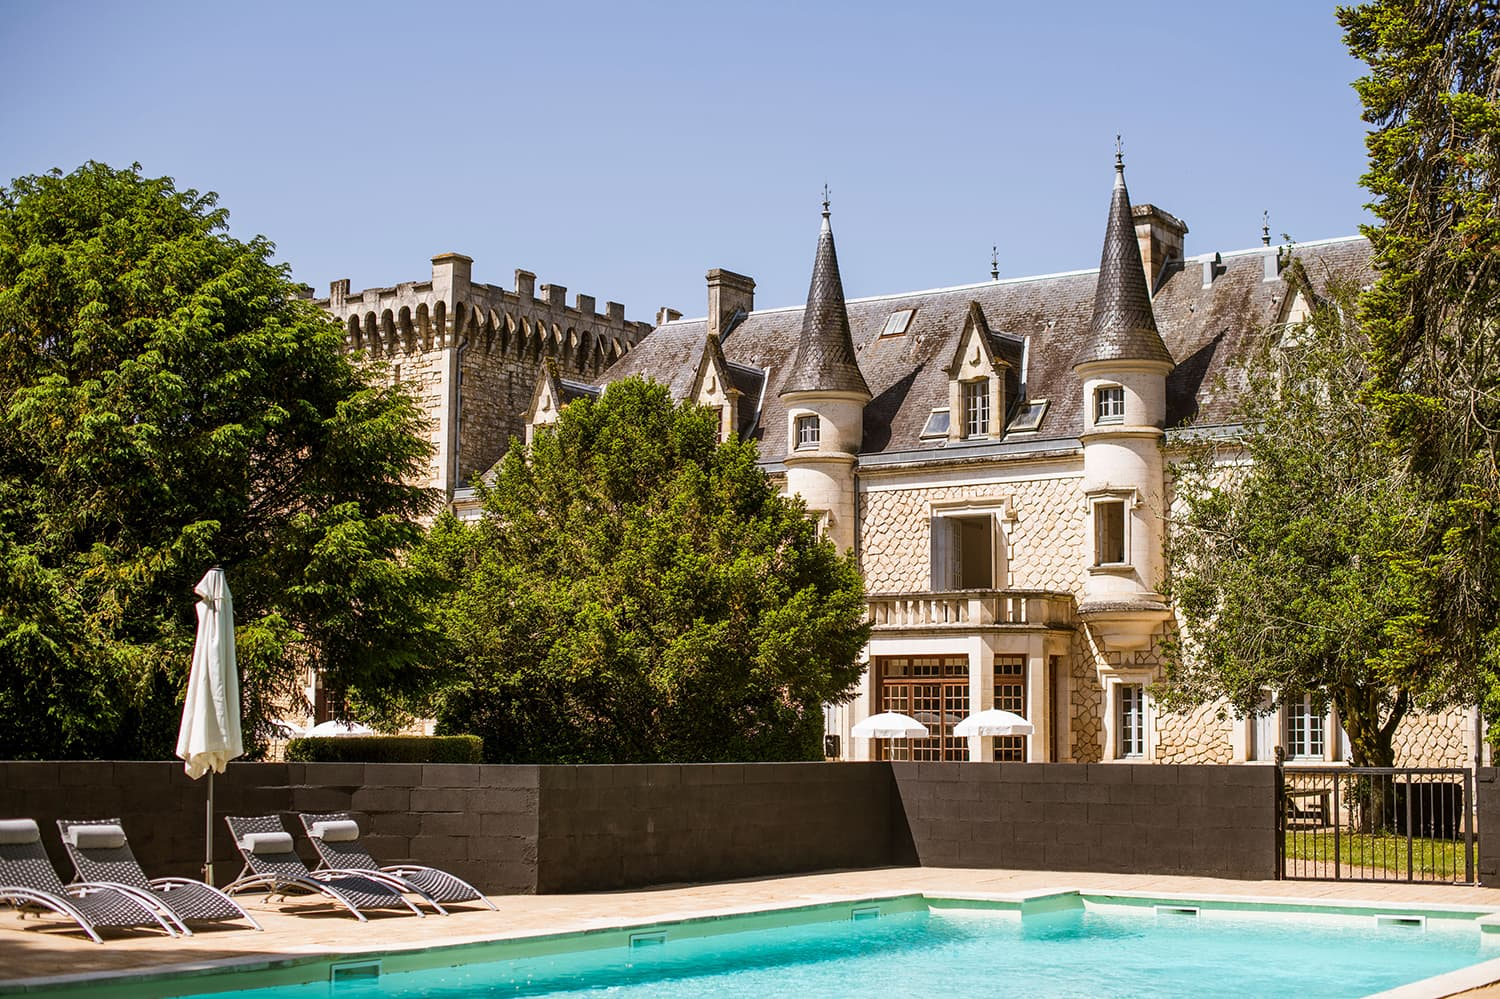 Vacation château in West France with pool